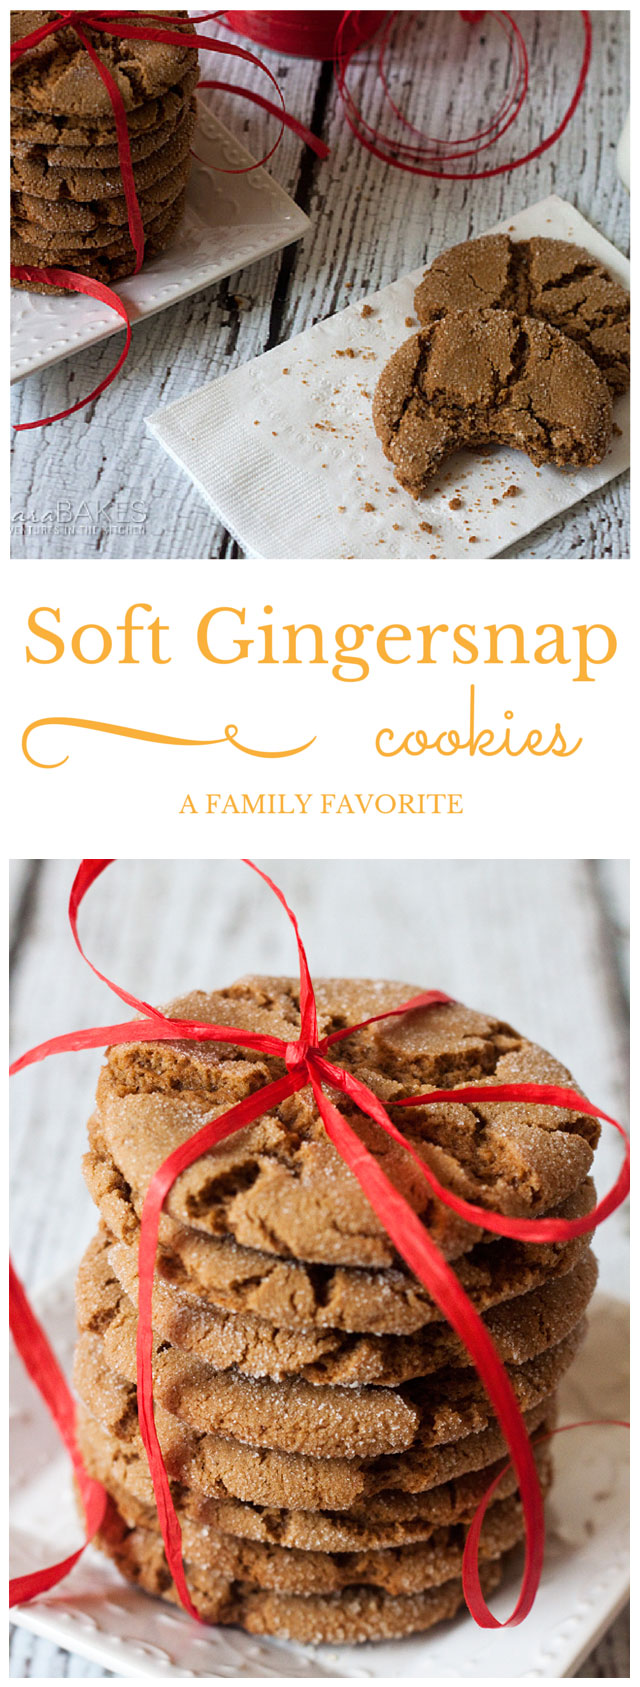 Soft Gingersnap Cookies - A Family Favorite